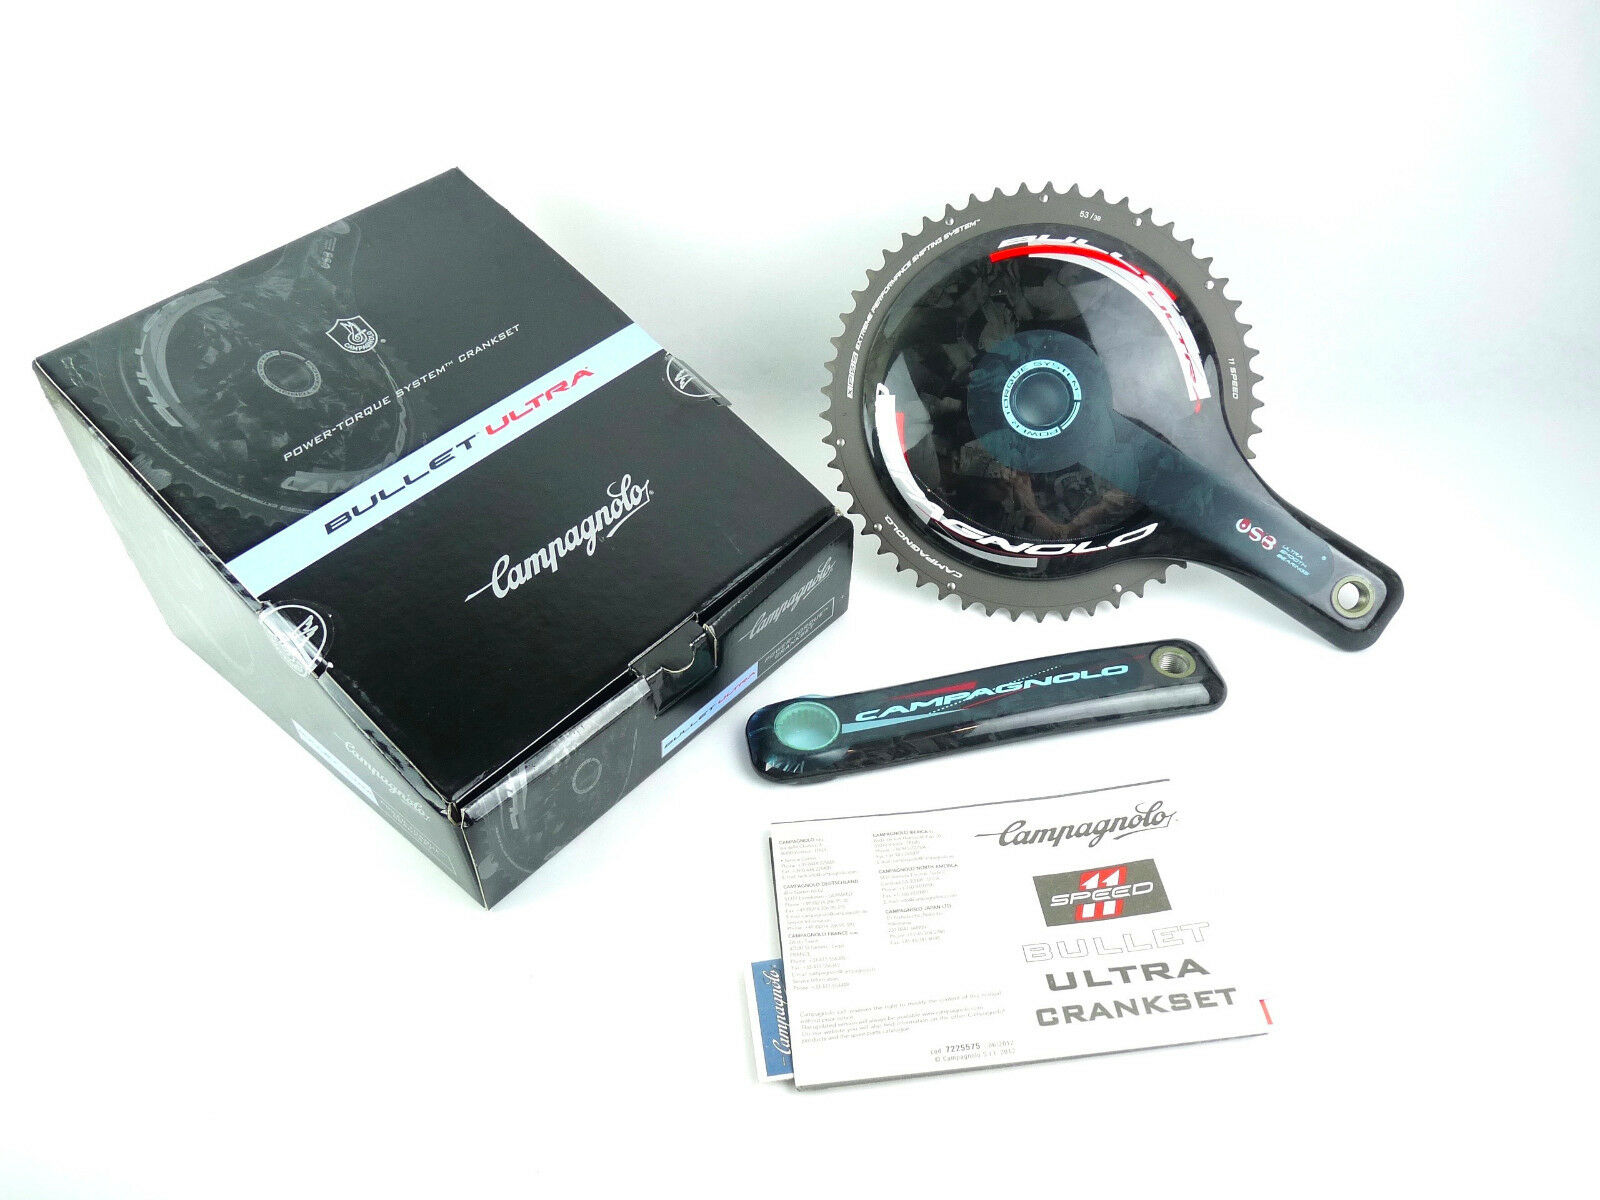 Campagnolo Bullet Crankset Carbon  11 Speed 172.5mm 53 39 ceramic bearings NOS  credit guarantee